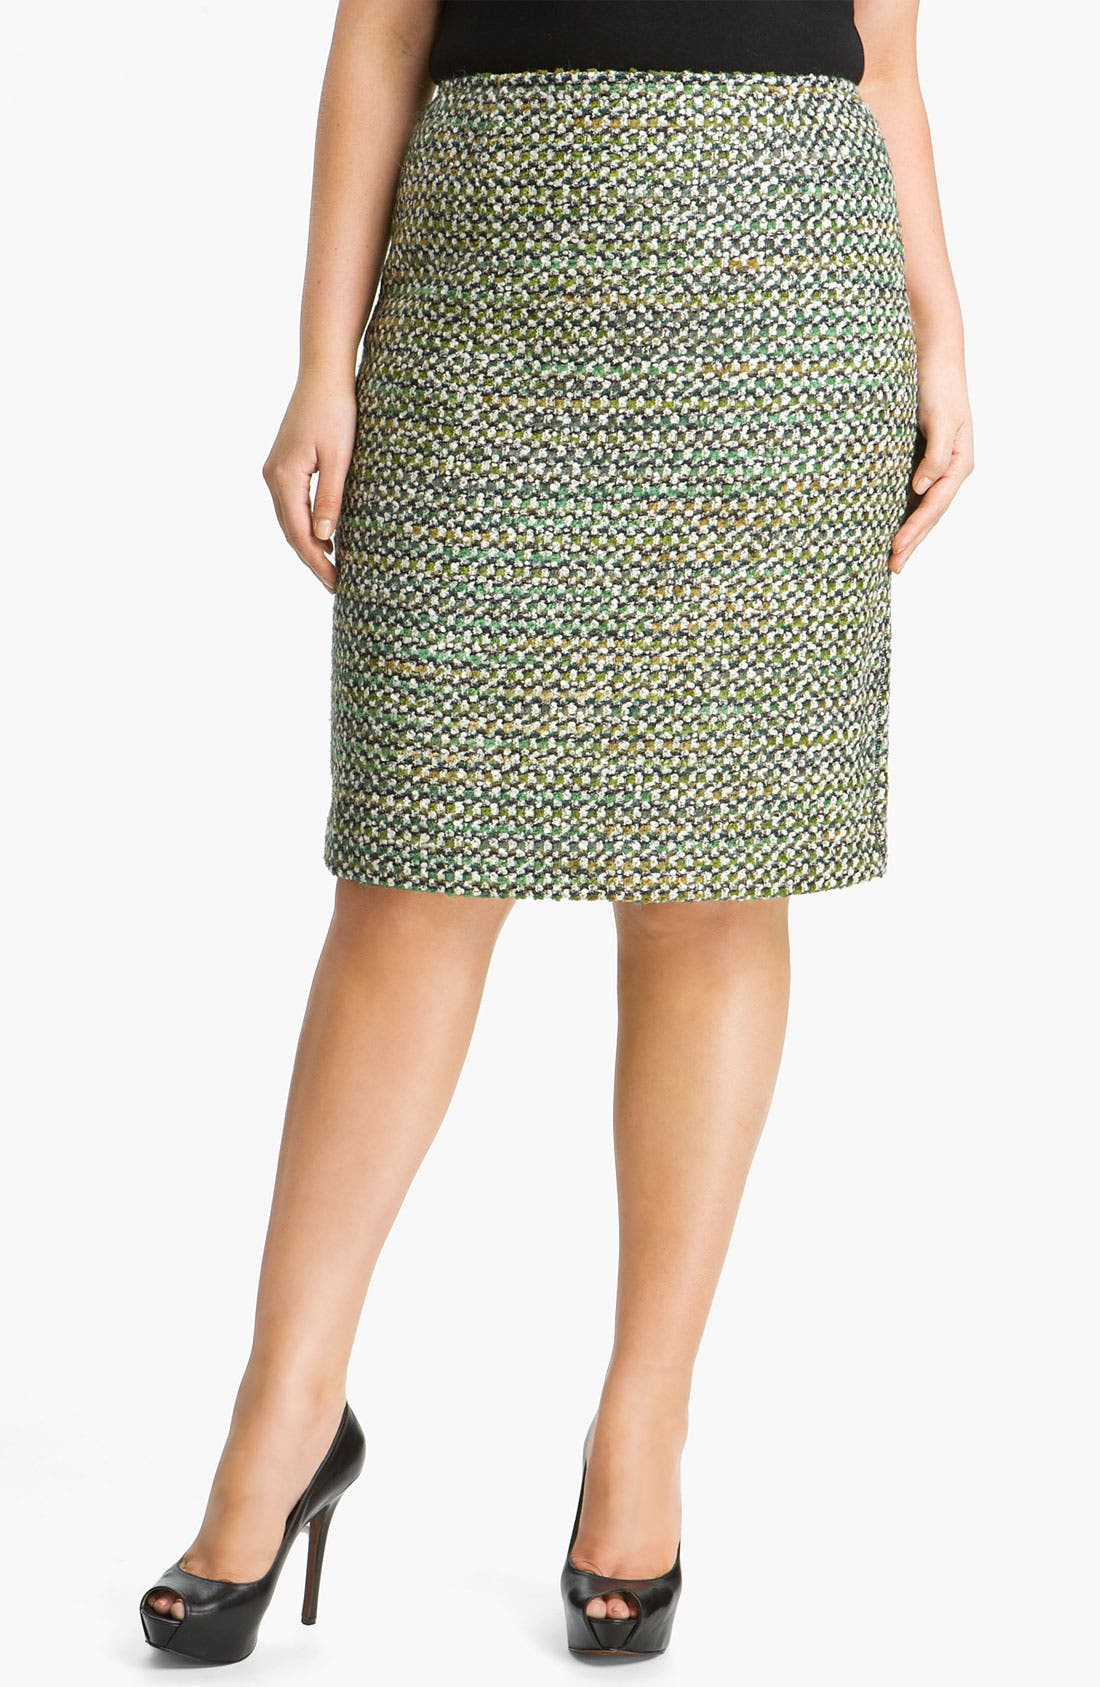 Alternate Image 1 Selected - Lafayette 148 New York 'Hierarchy' Tweed Skirt (Plus)